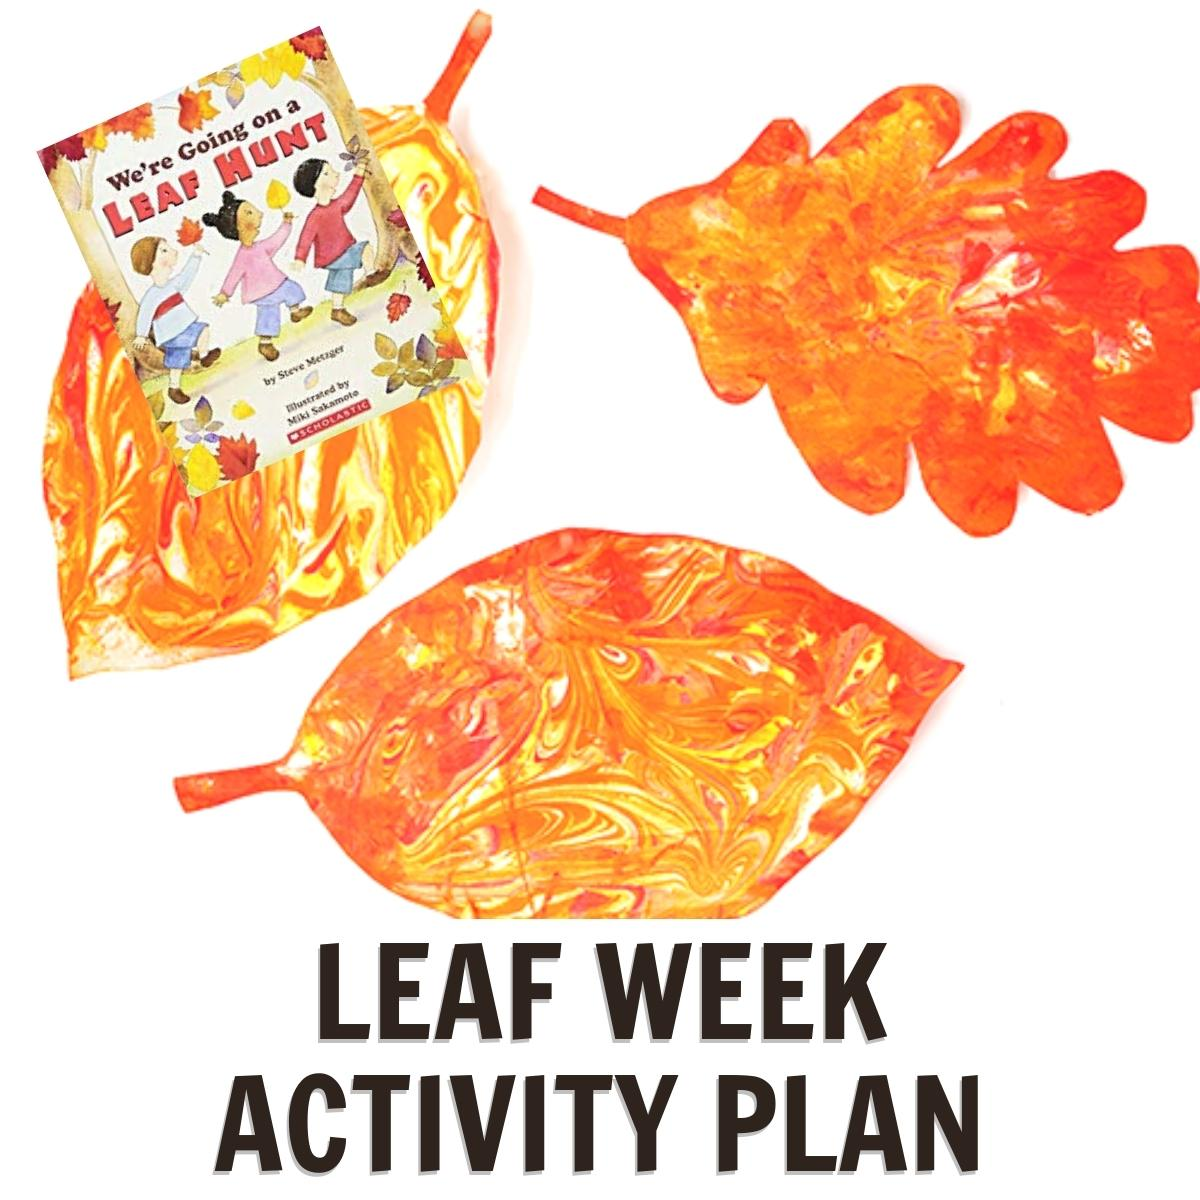 Leaf Week Activities for Preschoolers Featuring We're Going on a Leaf Hunt